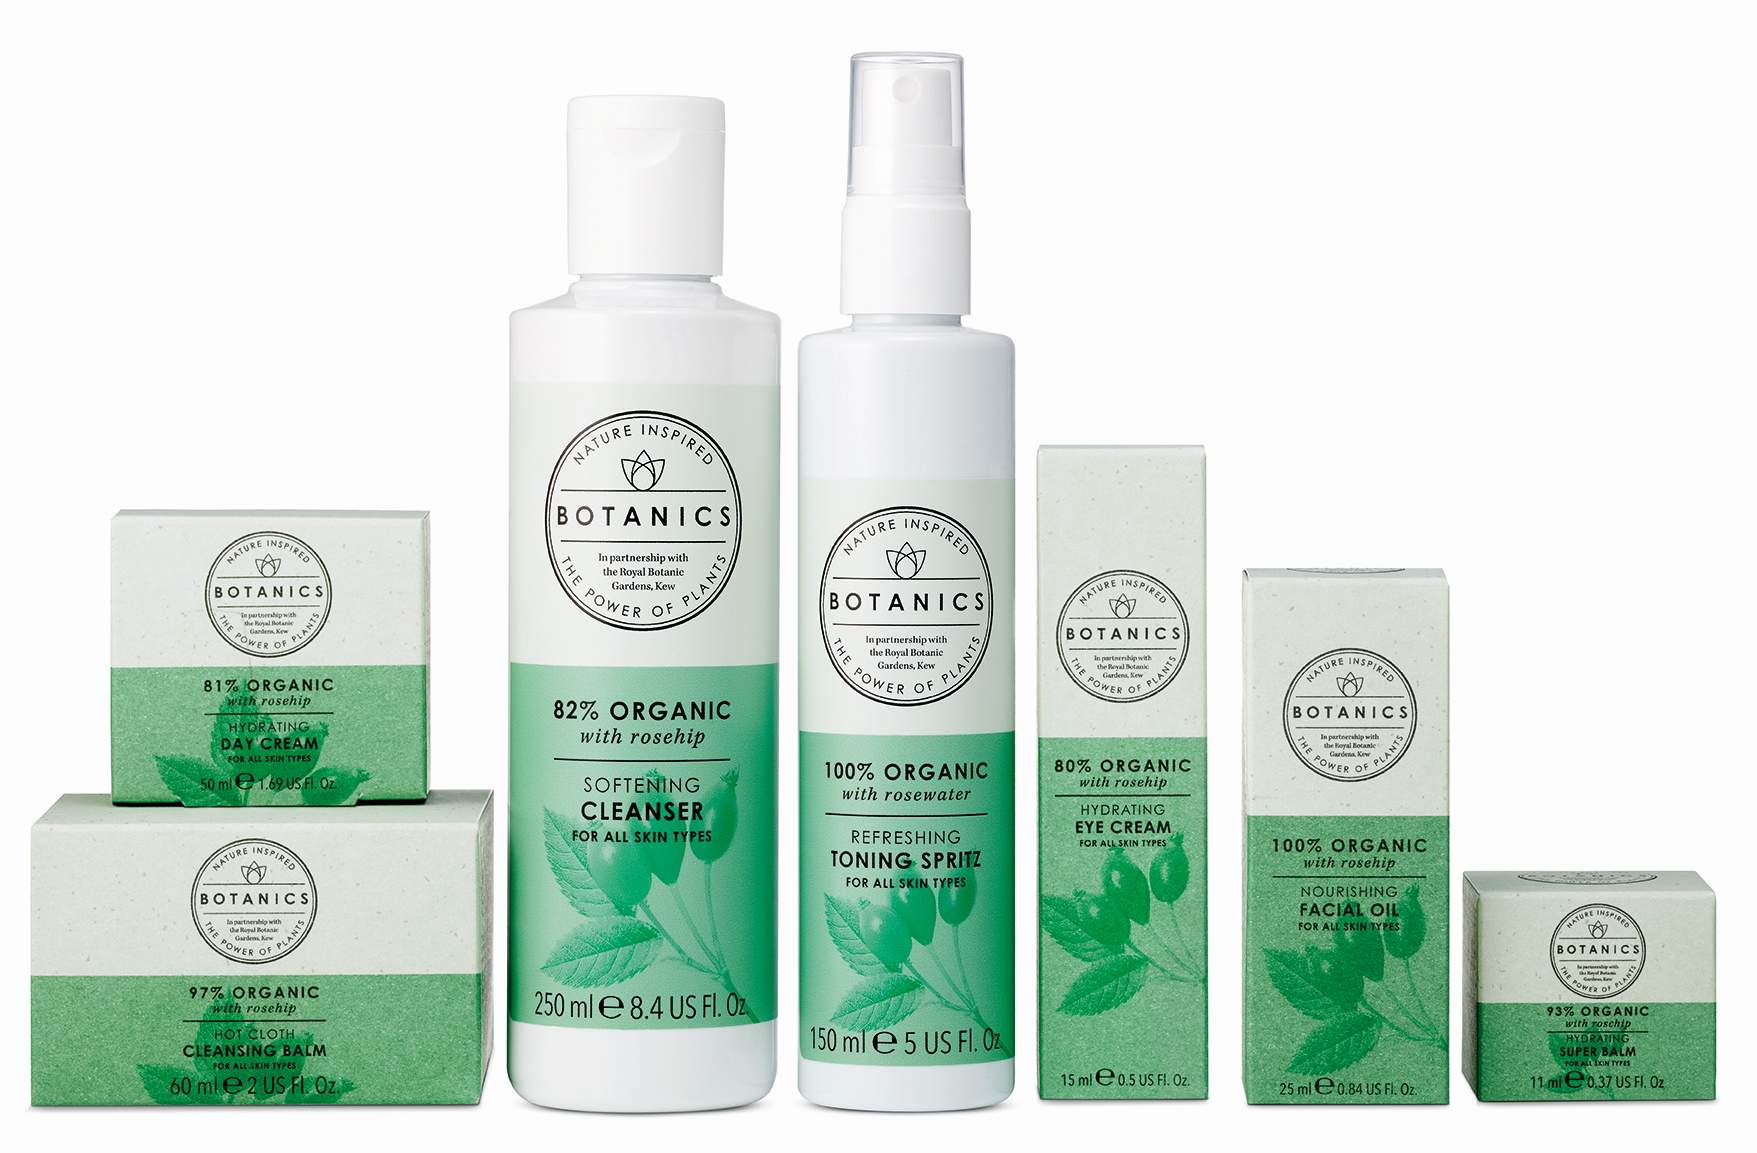 boots botanics skincare and the dirt